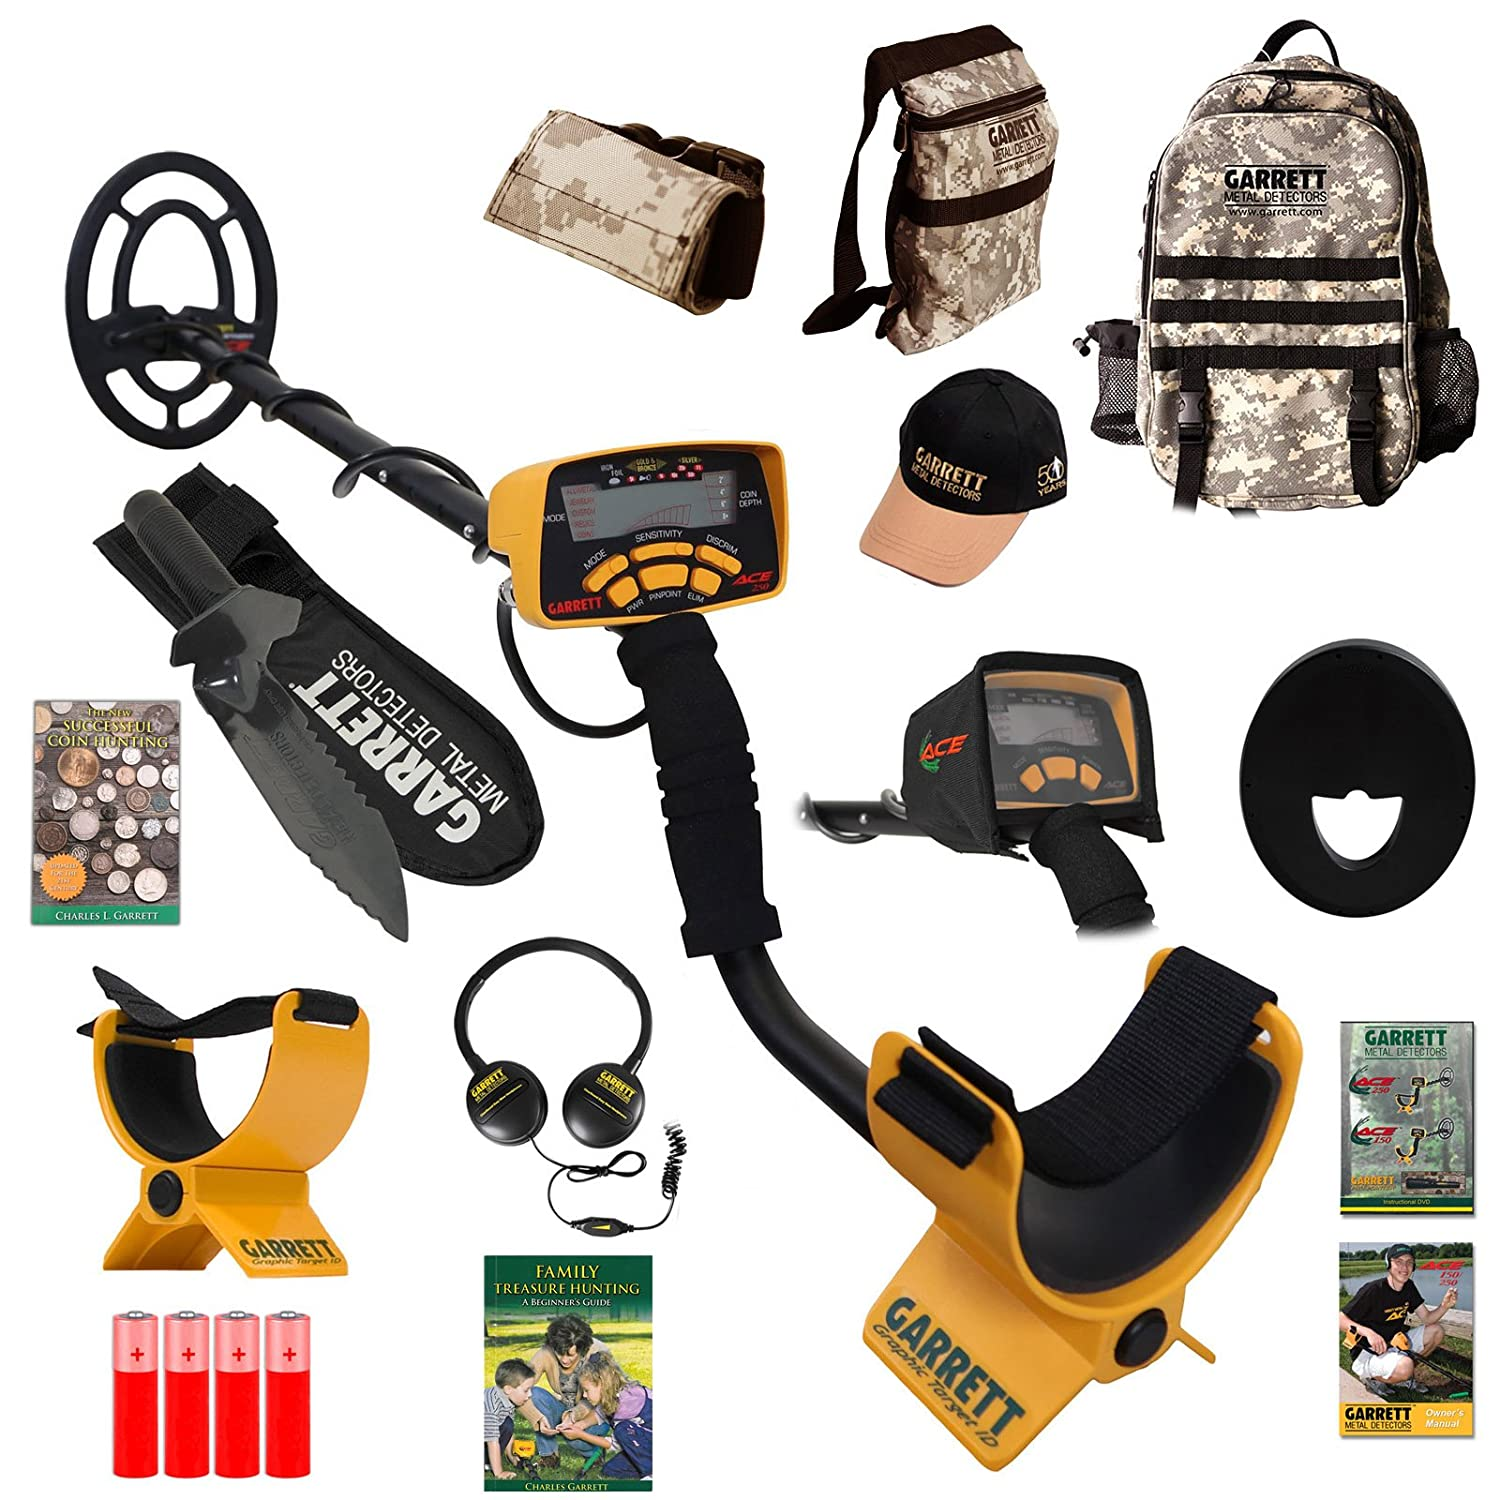 Amazon.com : Garrett Ace 250 Adventure Pk with Coin Hunter Book, Edge Digger Camo Daypack and More : Everything Else